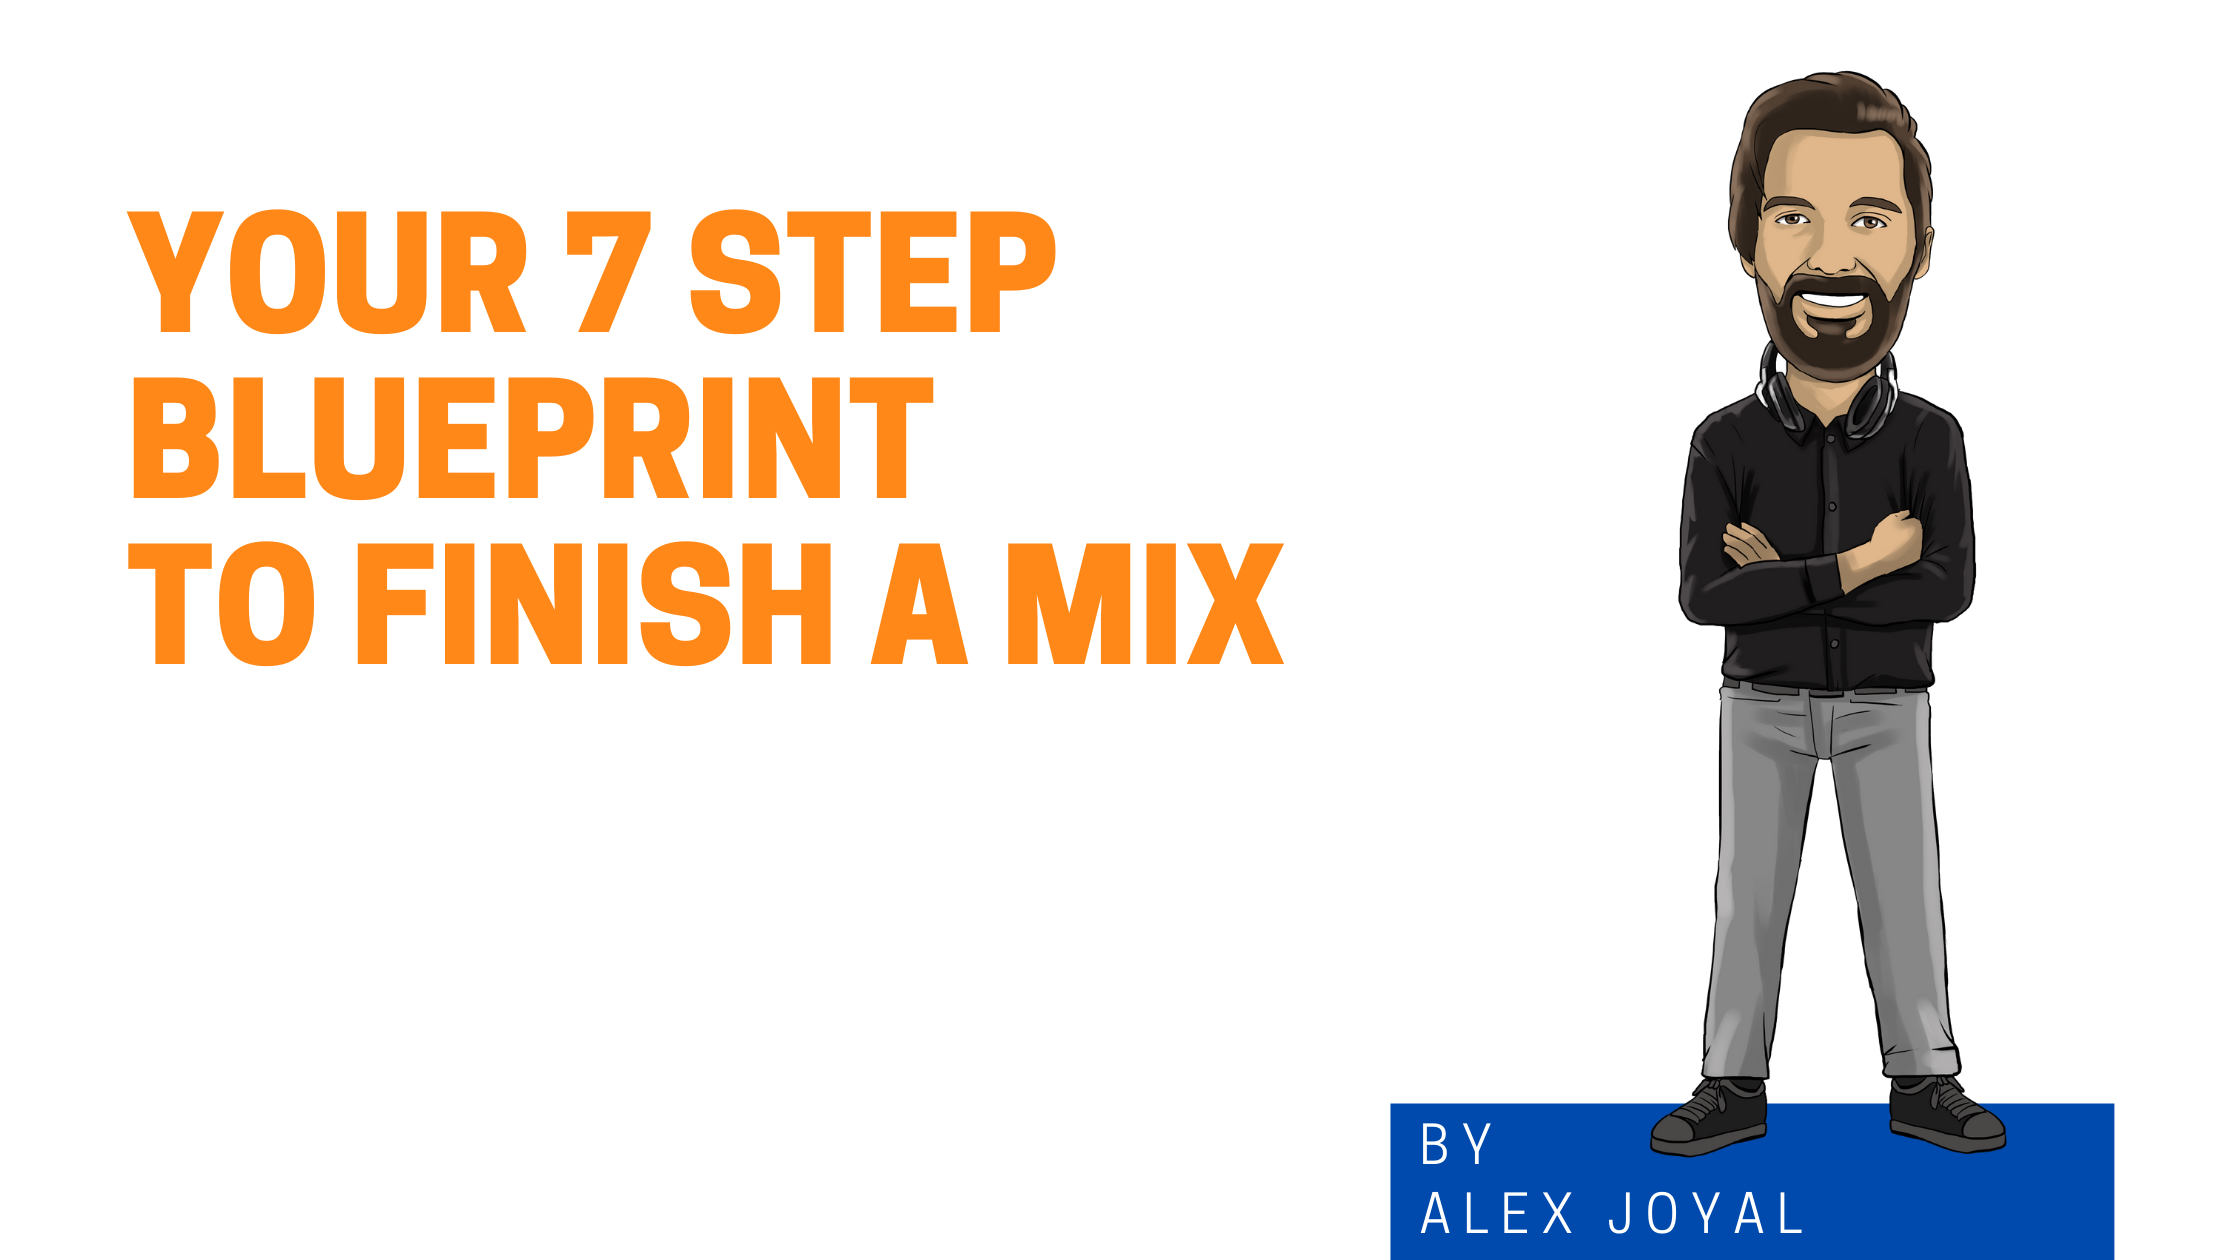 Alex Joyal Graphic About Your 7 Step Blueprint To Finish A Mix